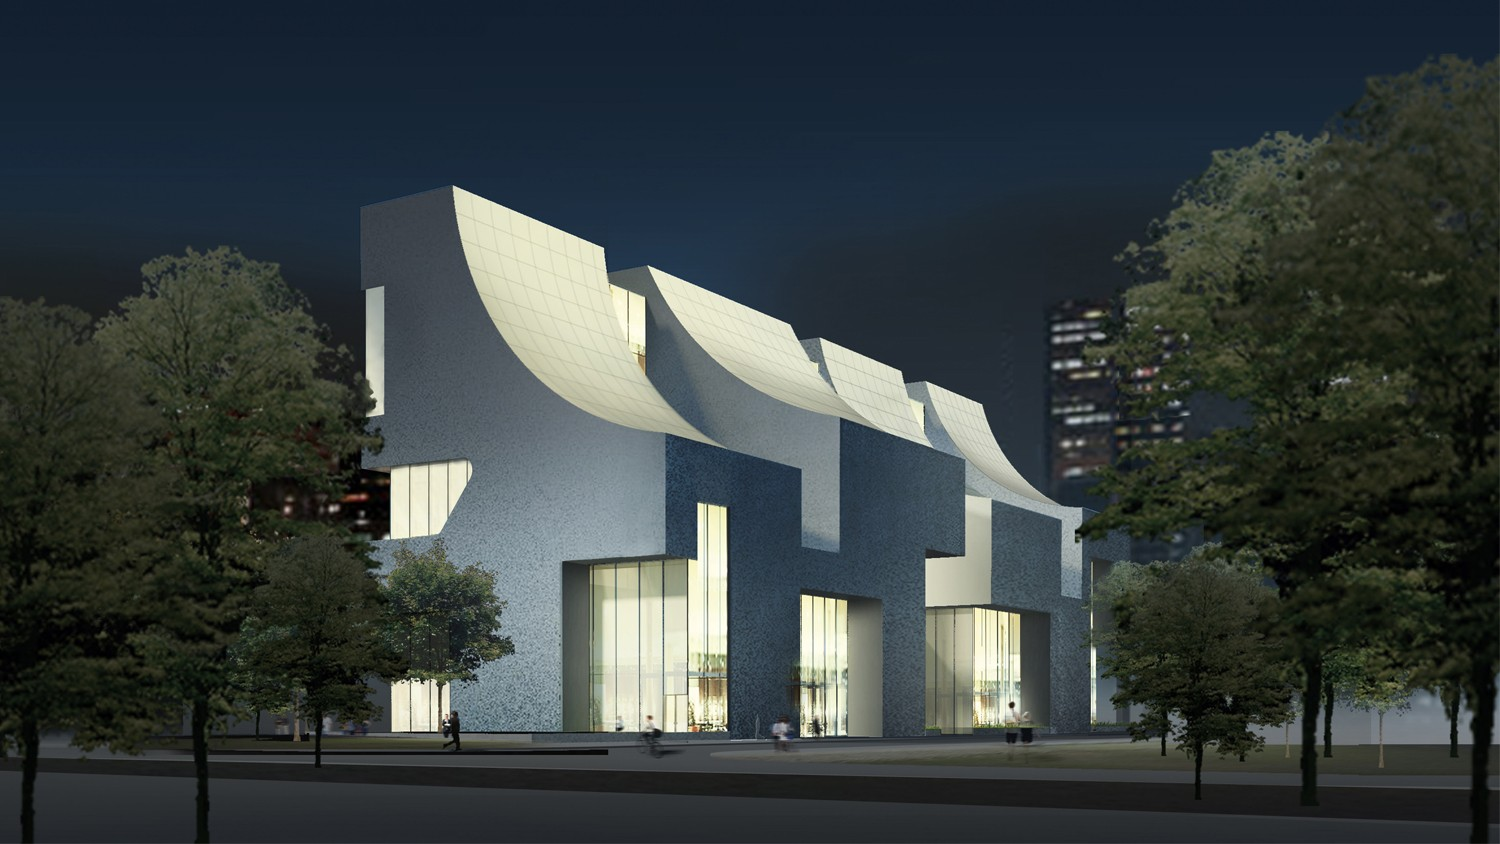 https://s3.us-east-2.amazonaws.com/steven-holl/uploads/projects/project-images/cifi-exterior-north-night.jpg